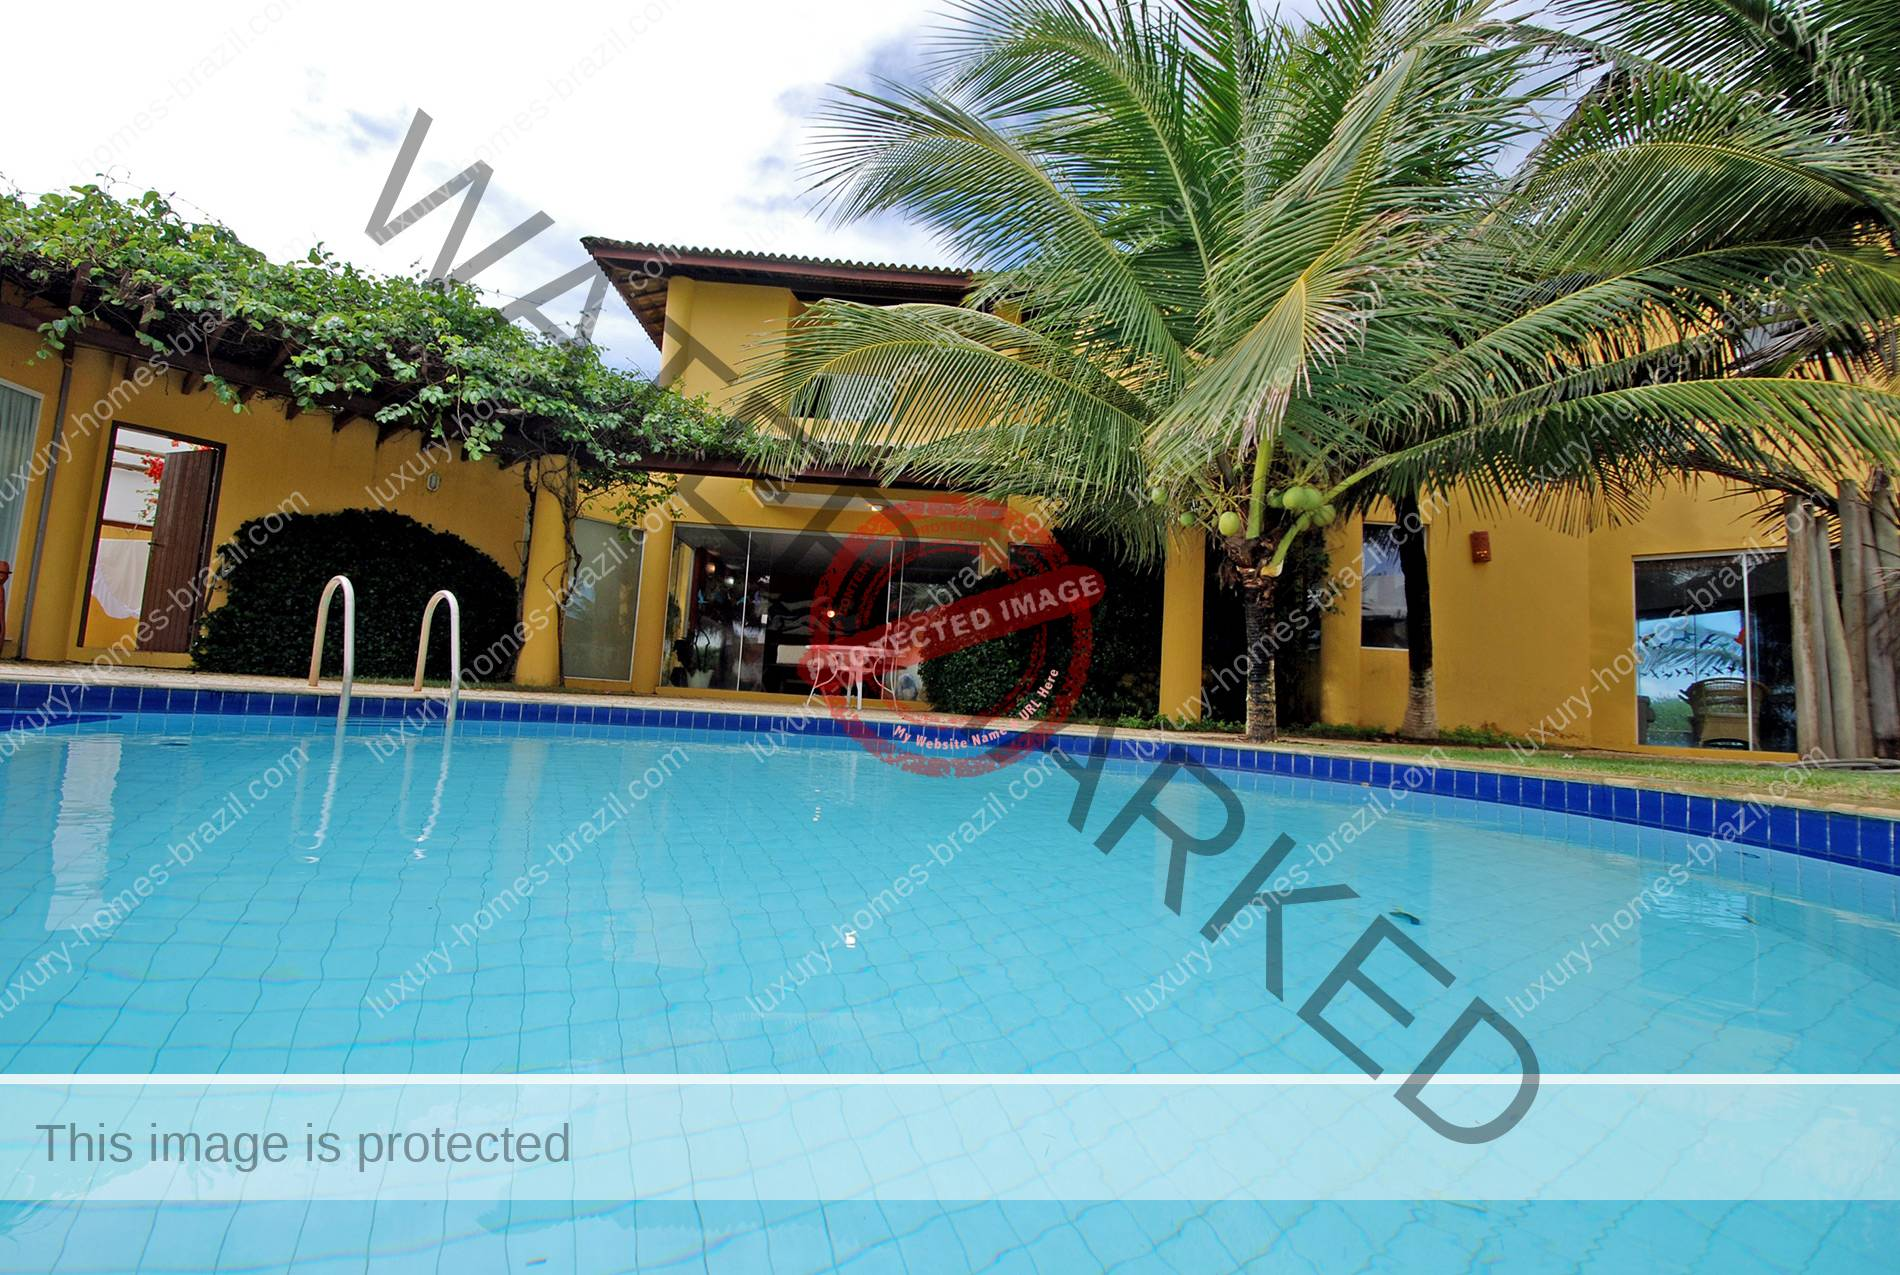 Home · Condos; Beachfront House For Sale In Interlagos Salvador